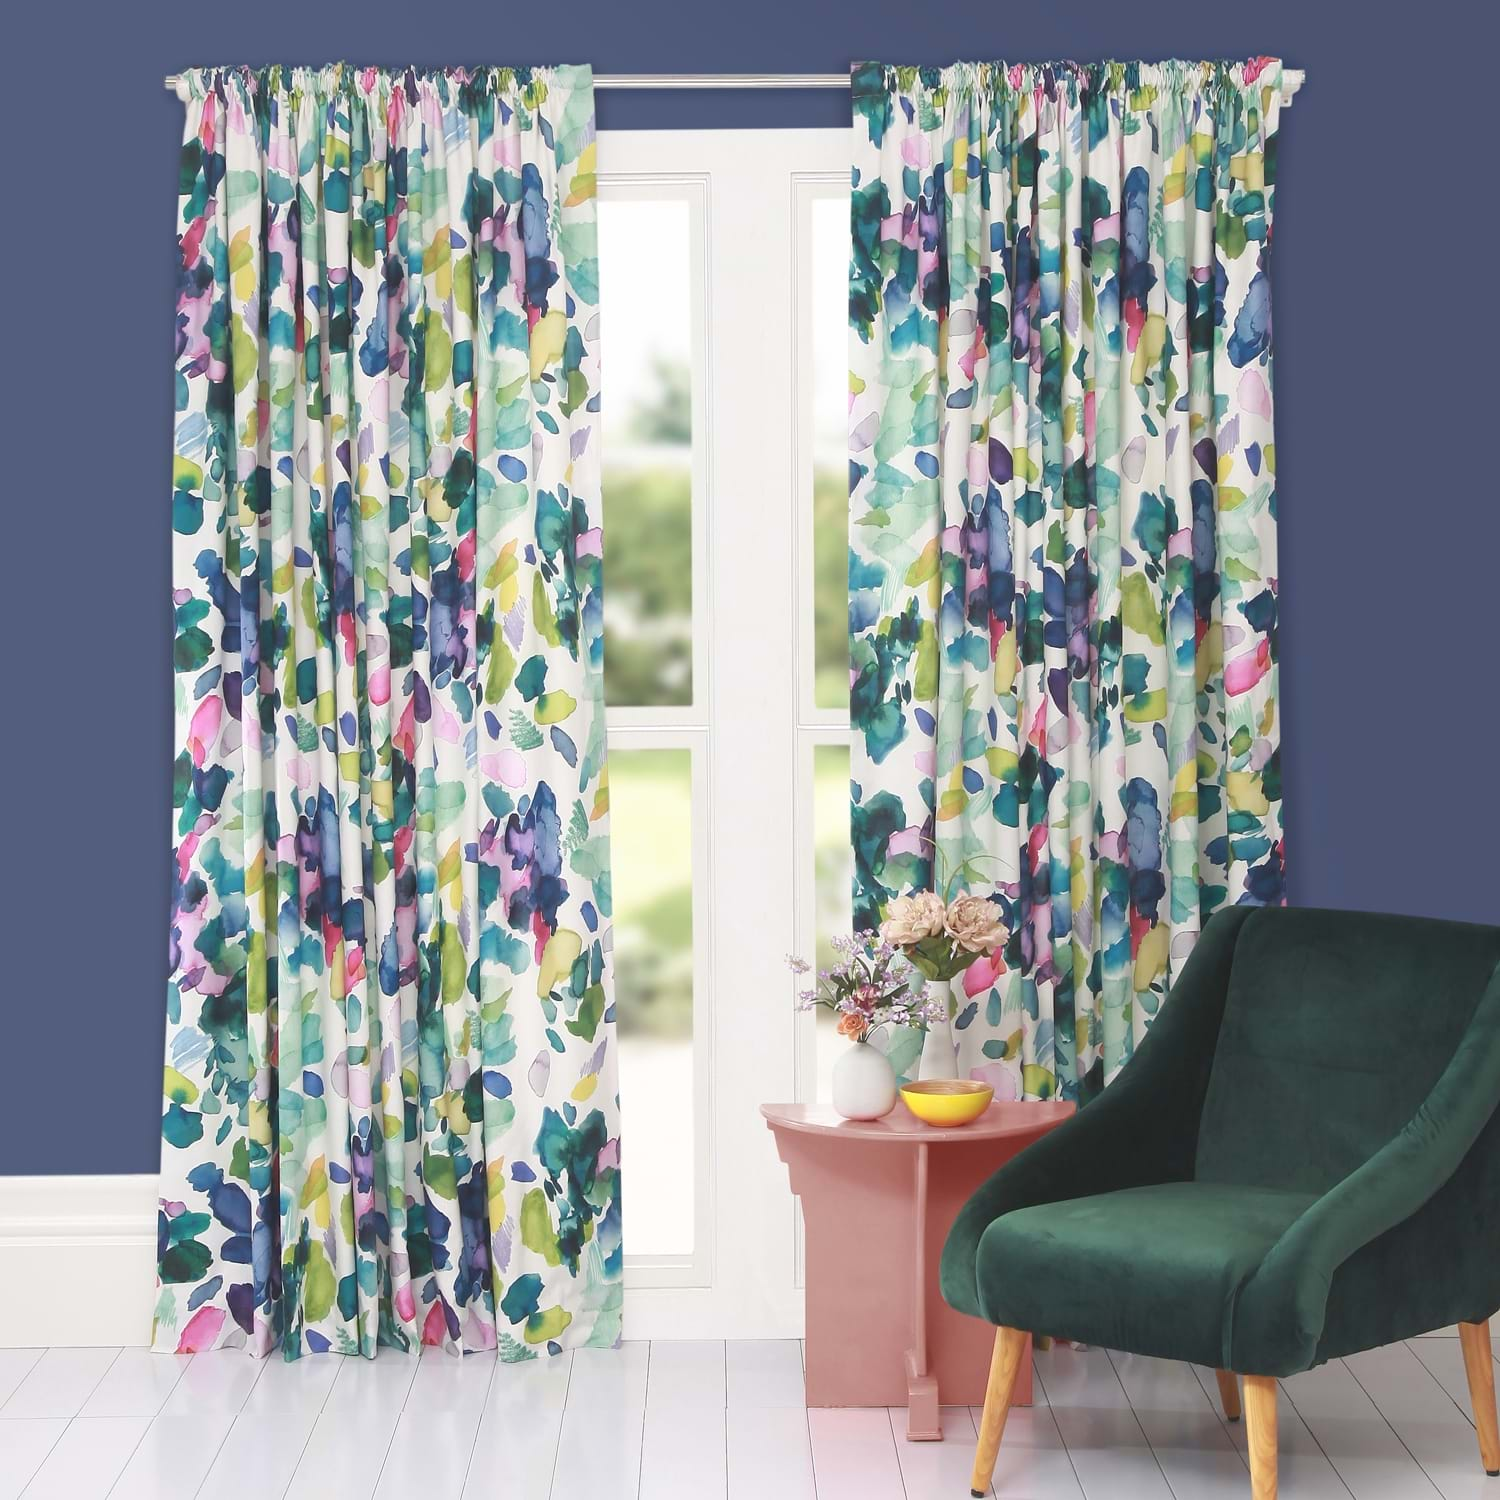 Image of Bluebellgray Palette Curtains 167 x 228cm, Multicoloured